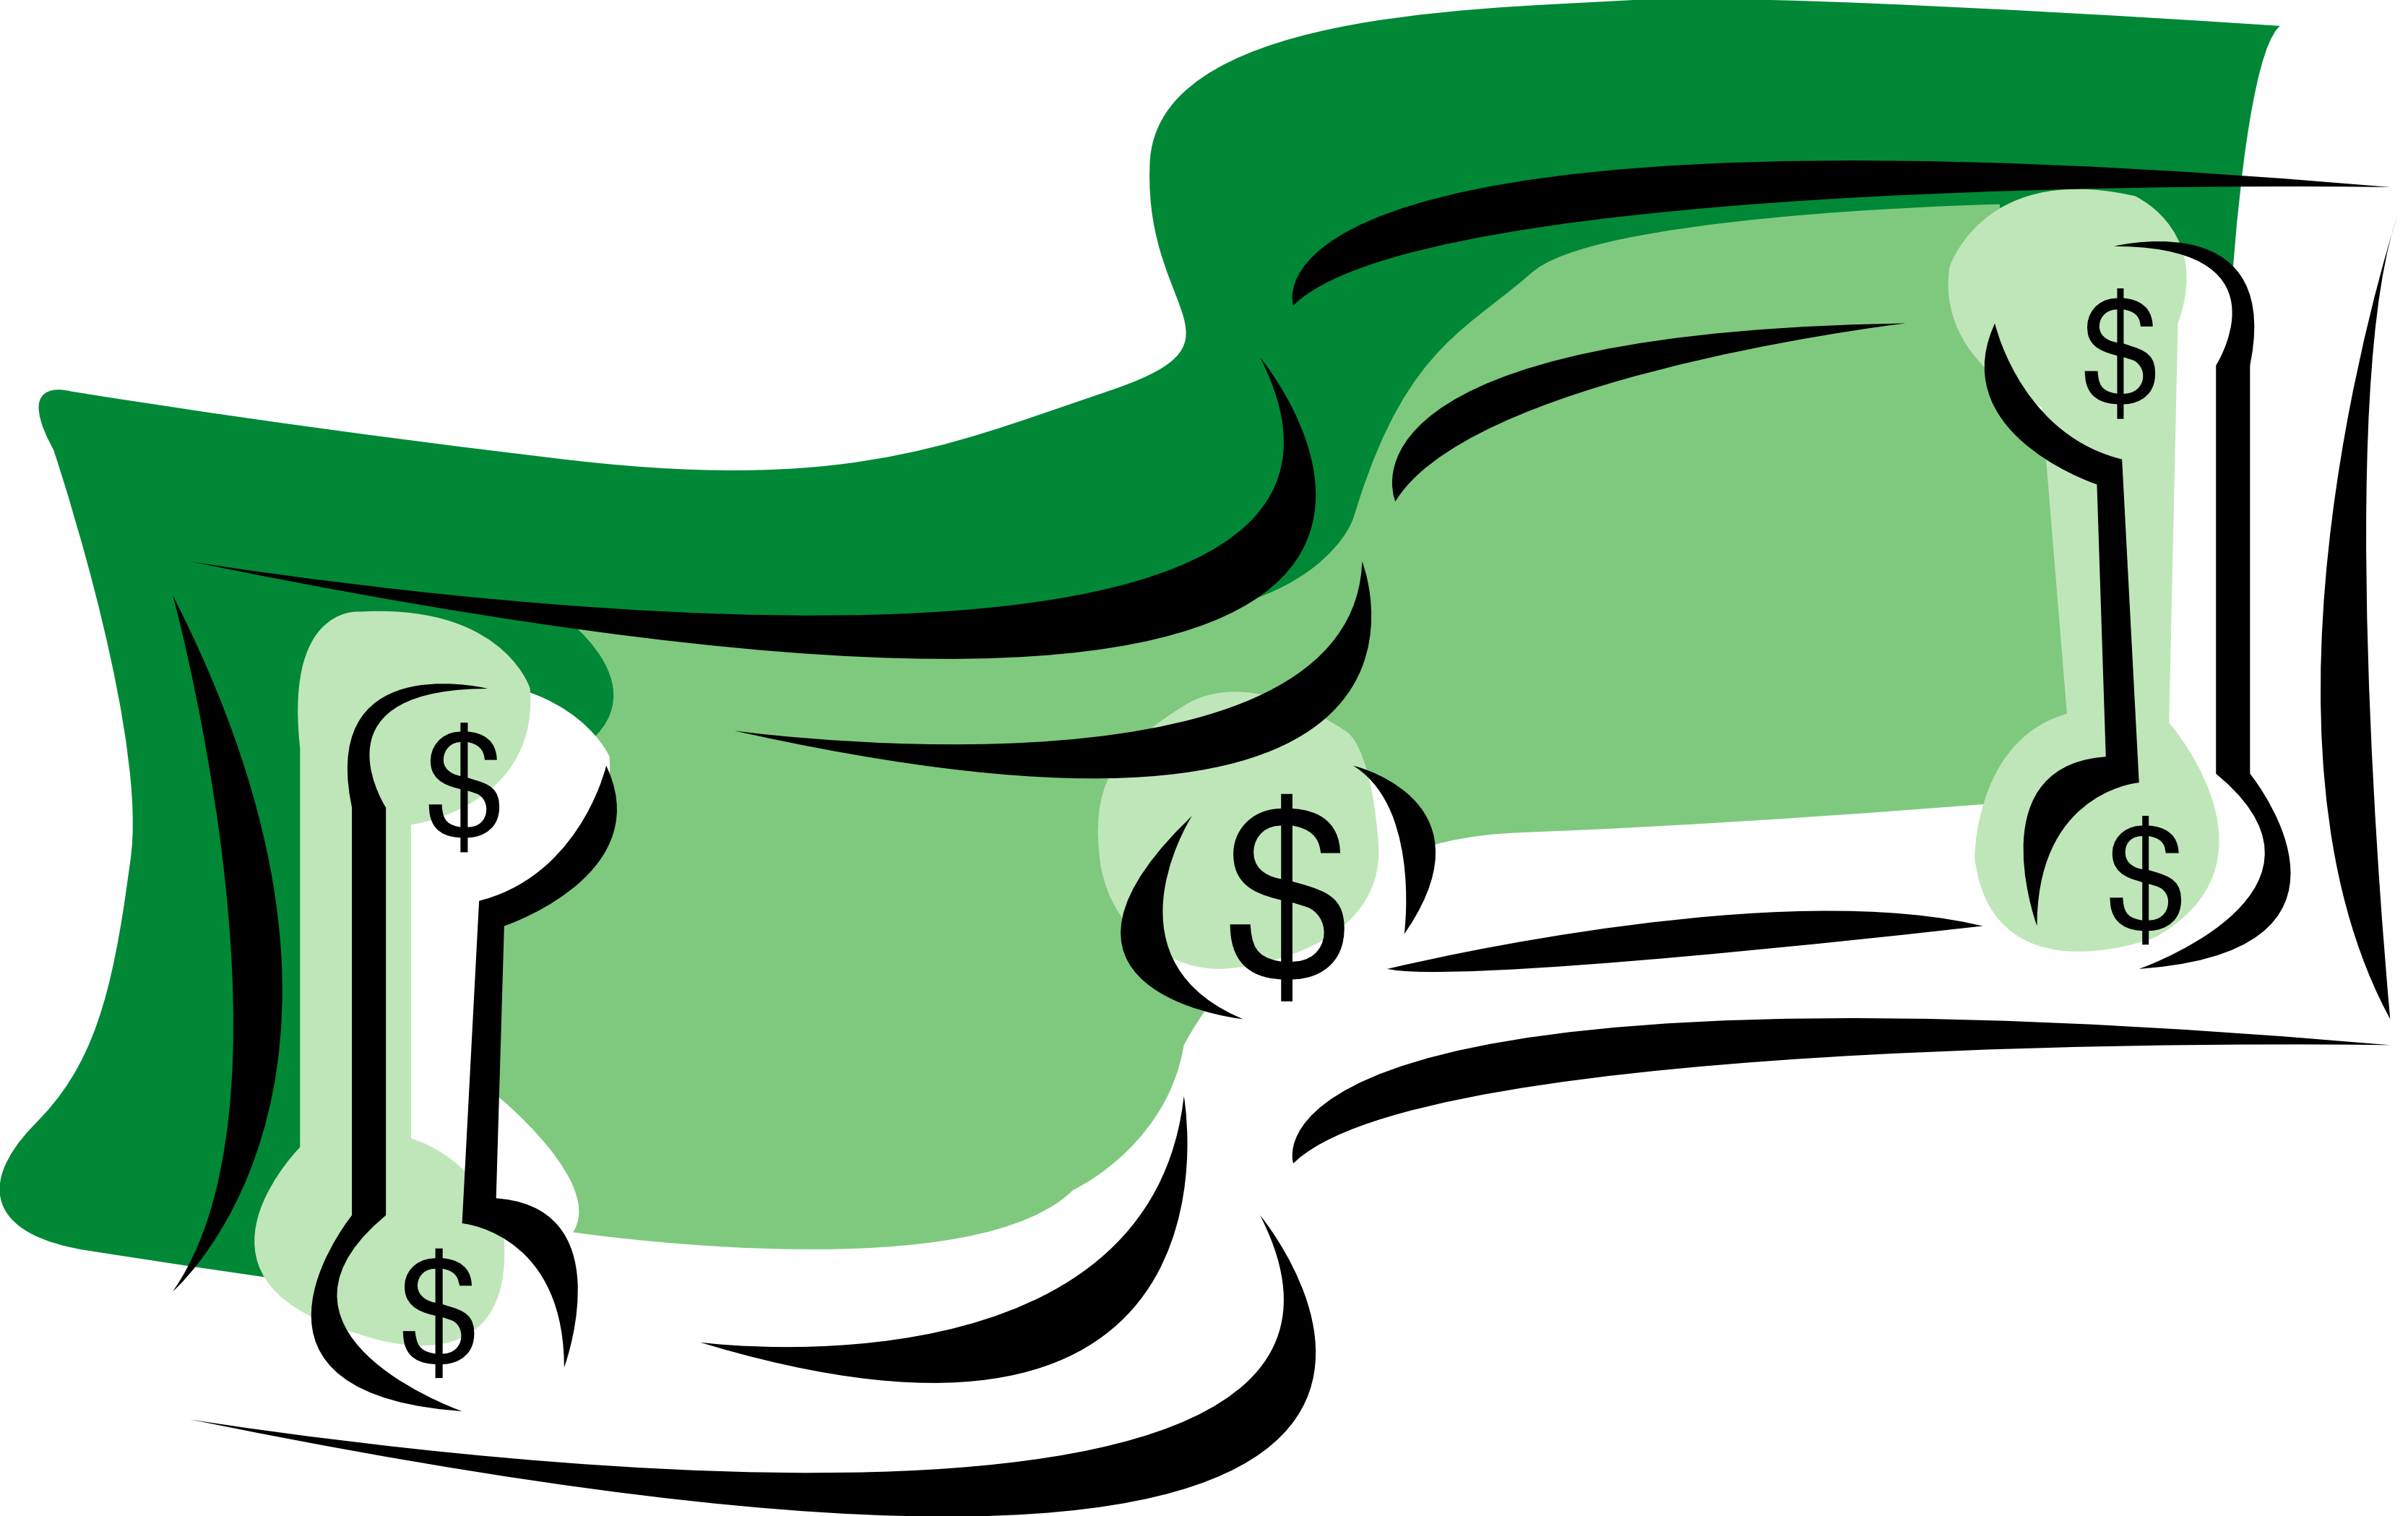 Dollar clipart #6, Download drawings